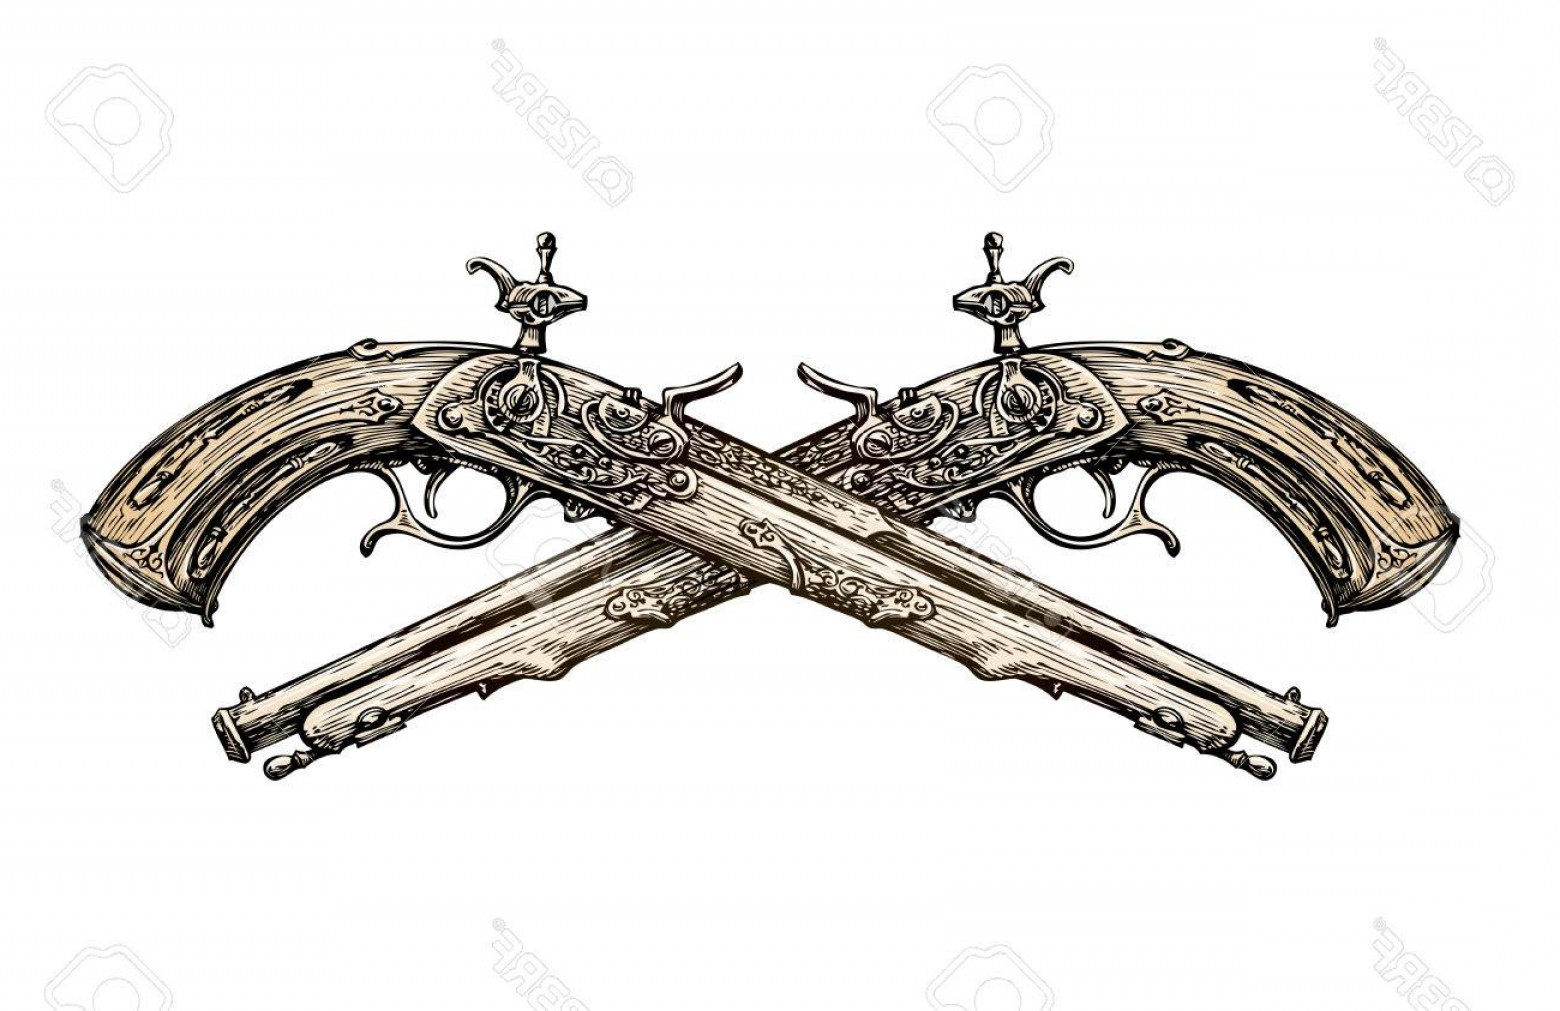 Vintage Crossed Pistols Vector: Photostock Vector Crossed Vintage Pistols Hand Drawn Sketch Ancient Weapon Duel Vector Illustration